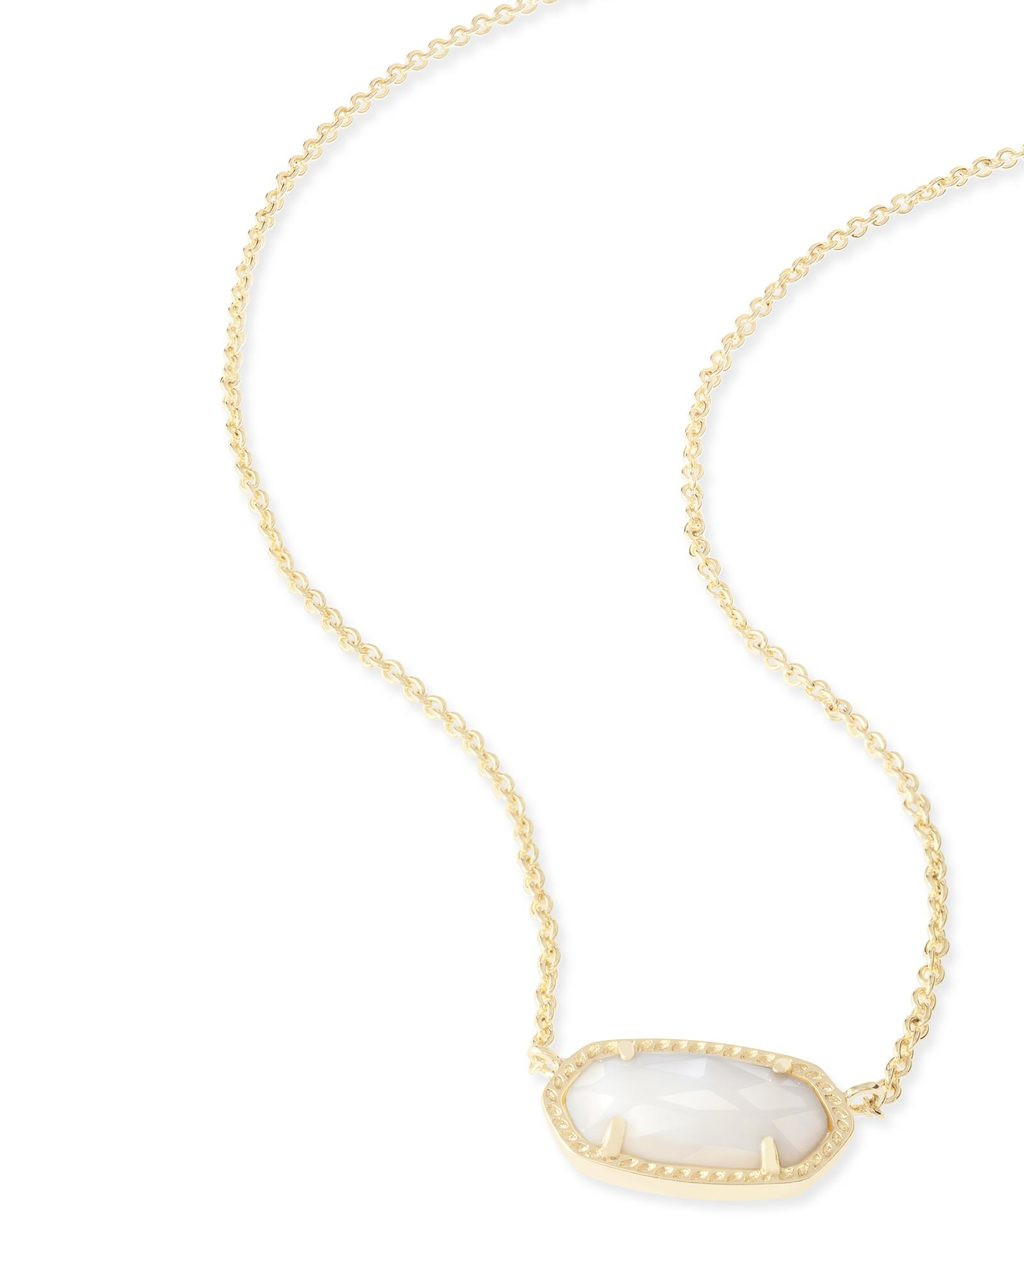 baa5bb0b34757b Kendra Scott Elisa Gold Pendant Necklace in White Pearl. Price: $50.00.  Image 1